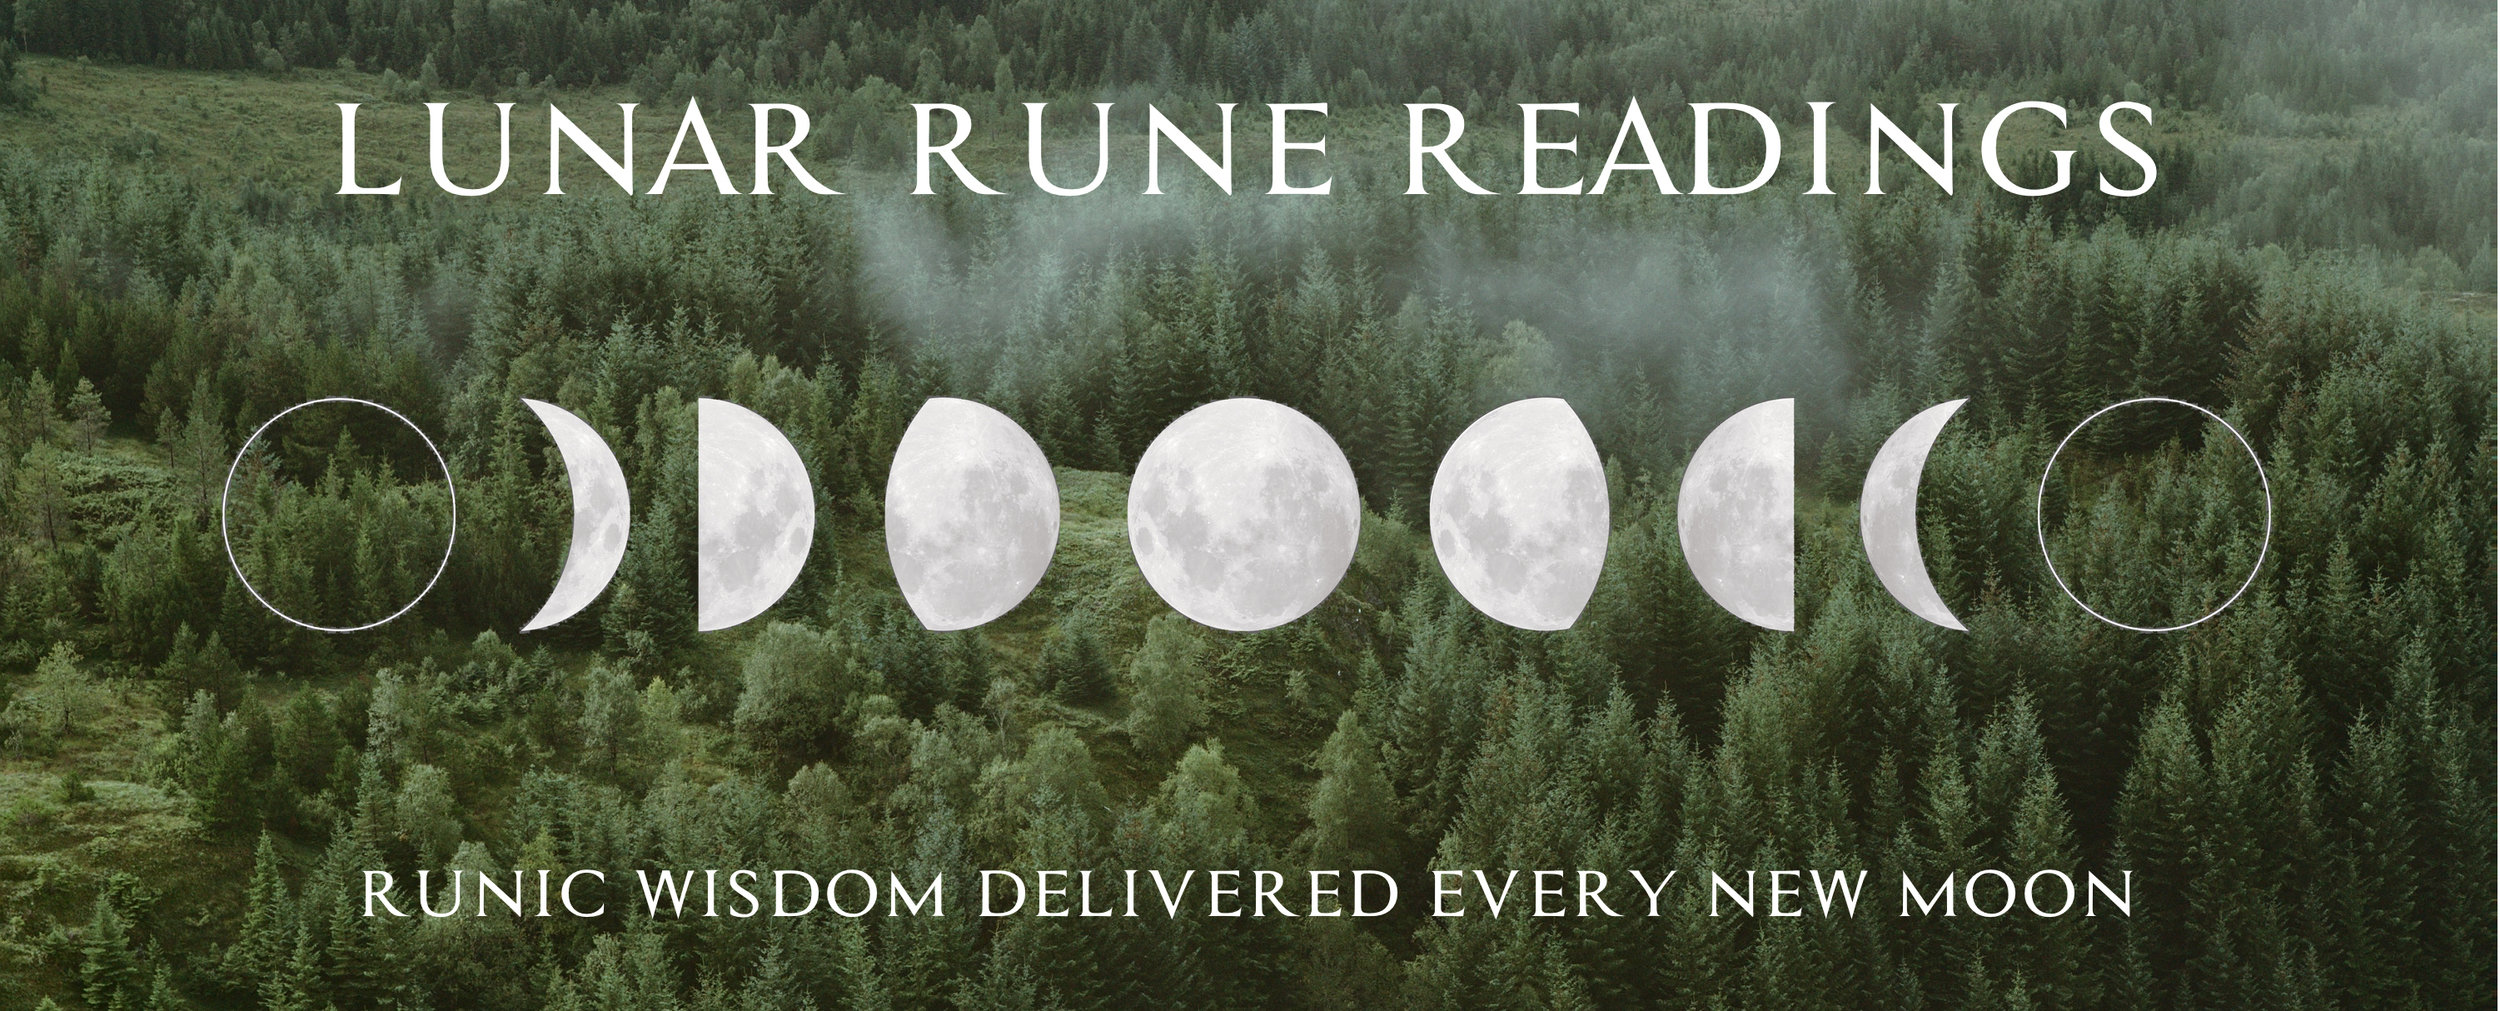 lunar rune readings banner cropped.jpeg